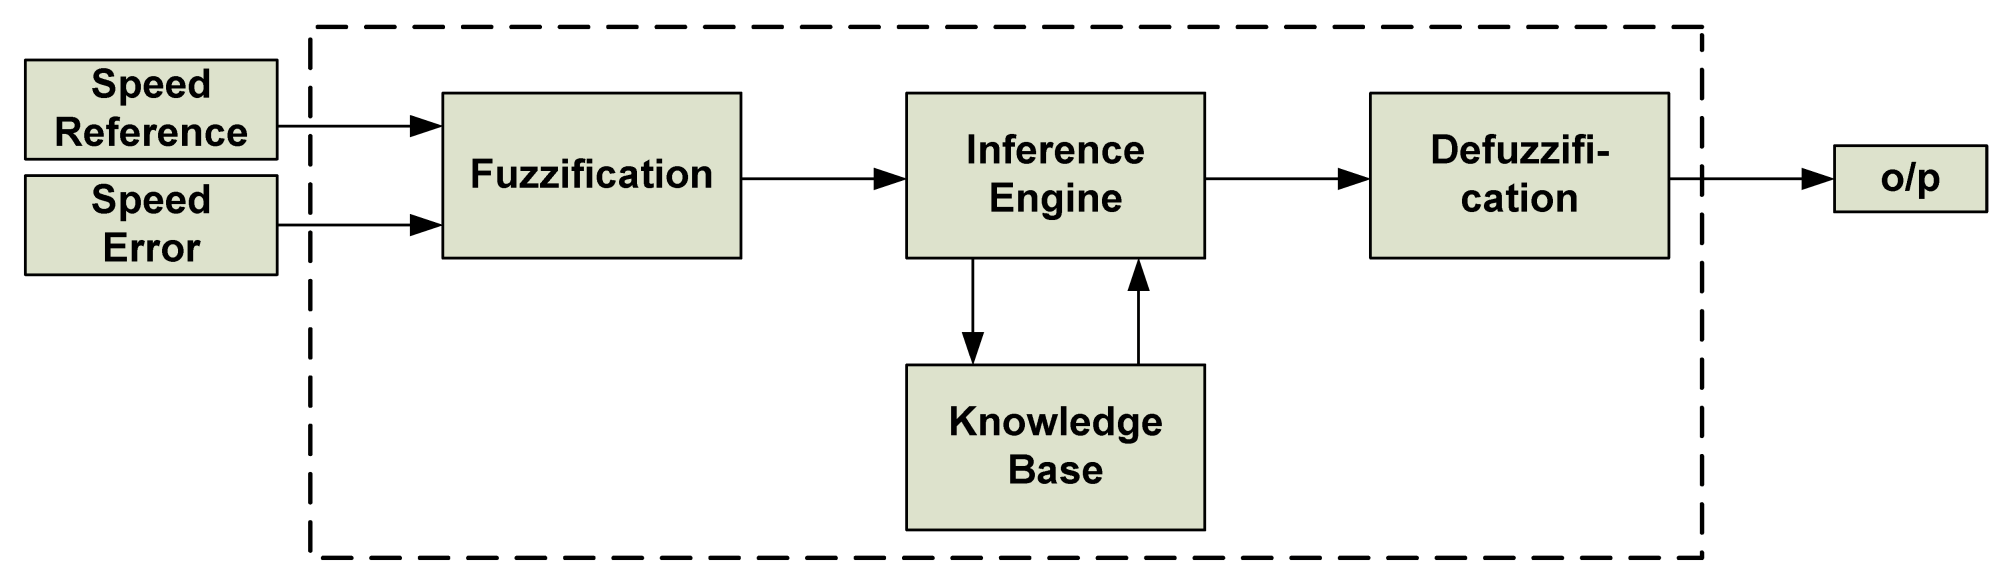 hight resolution of figure 6 a general block diagram